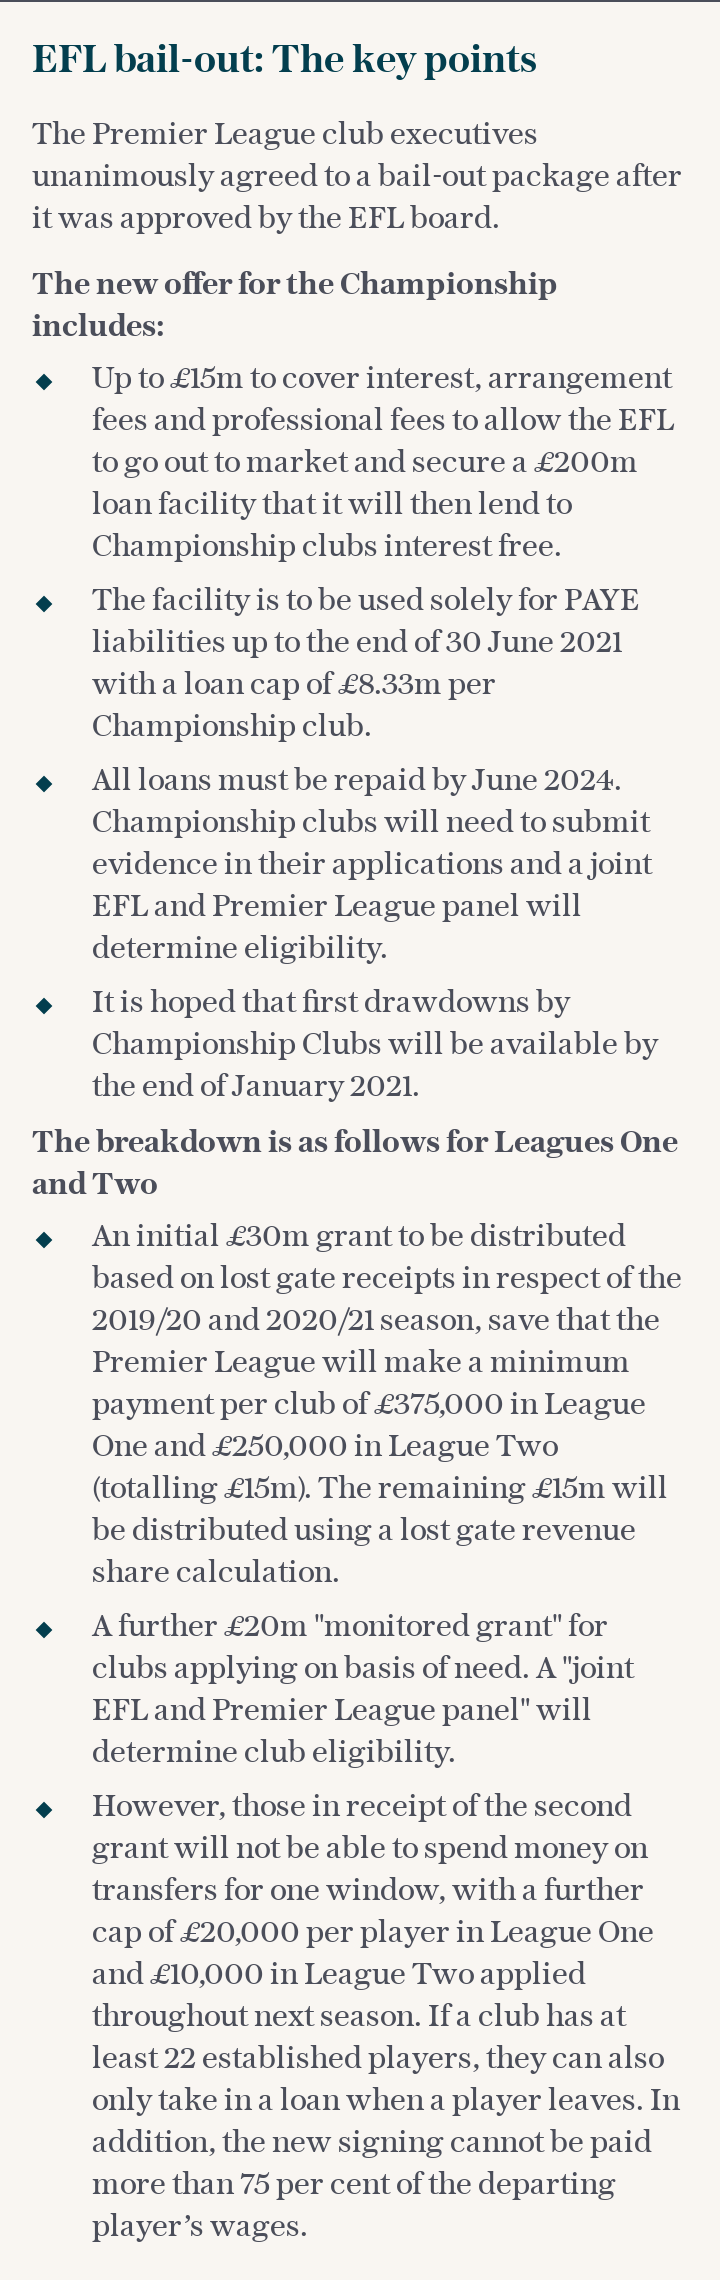 EFL bail-out: The key points